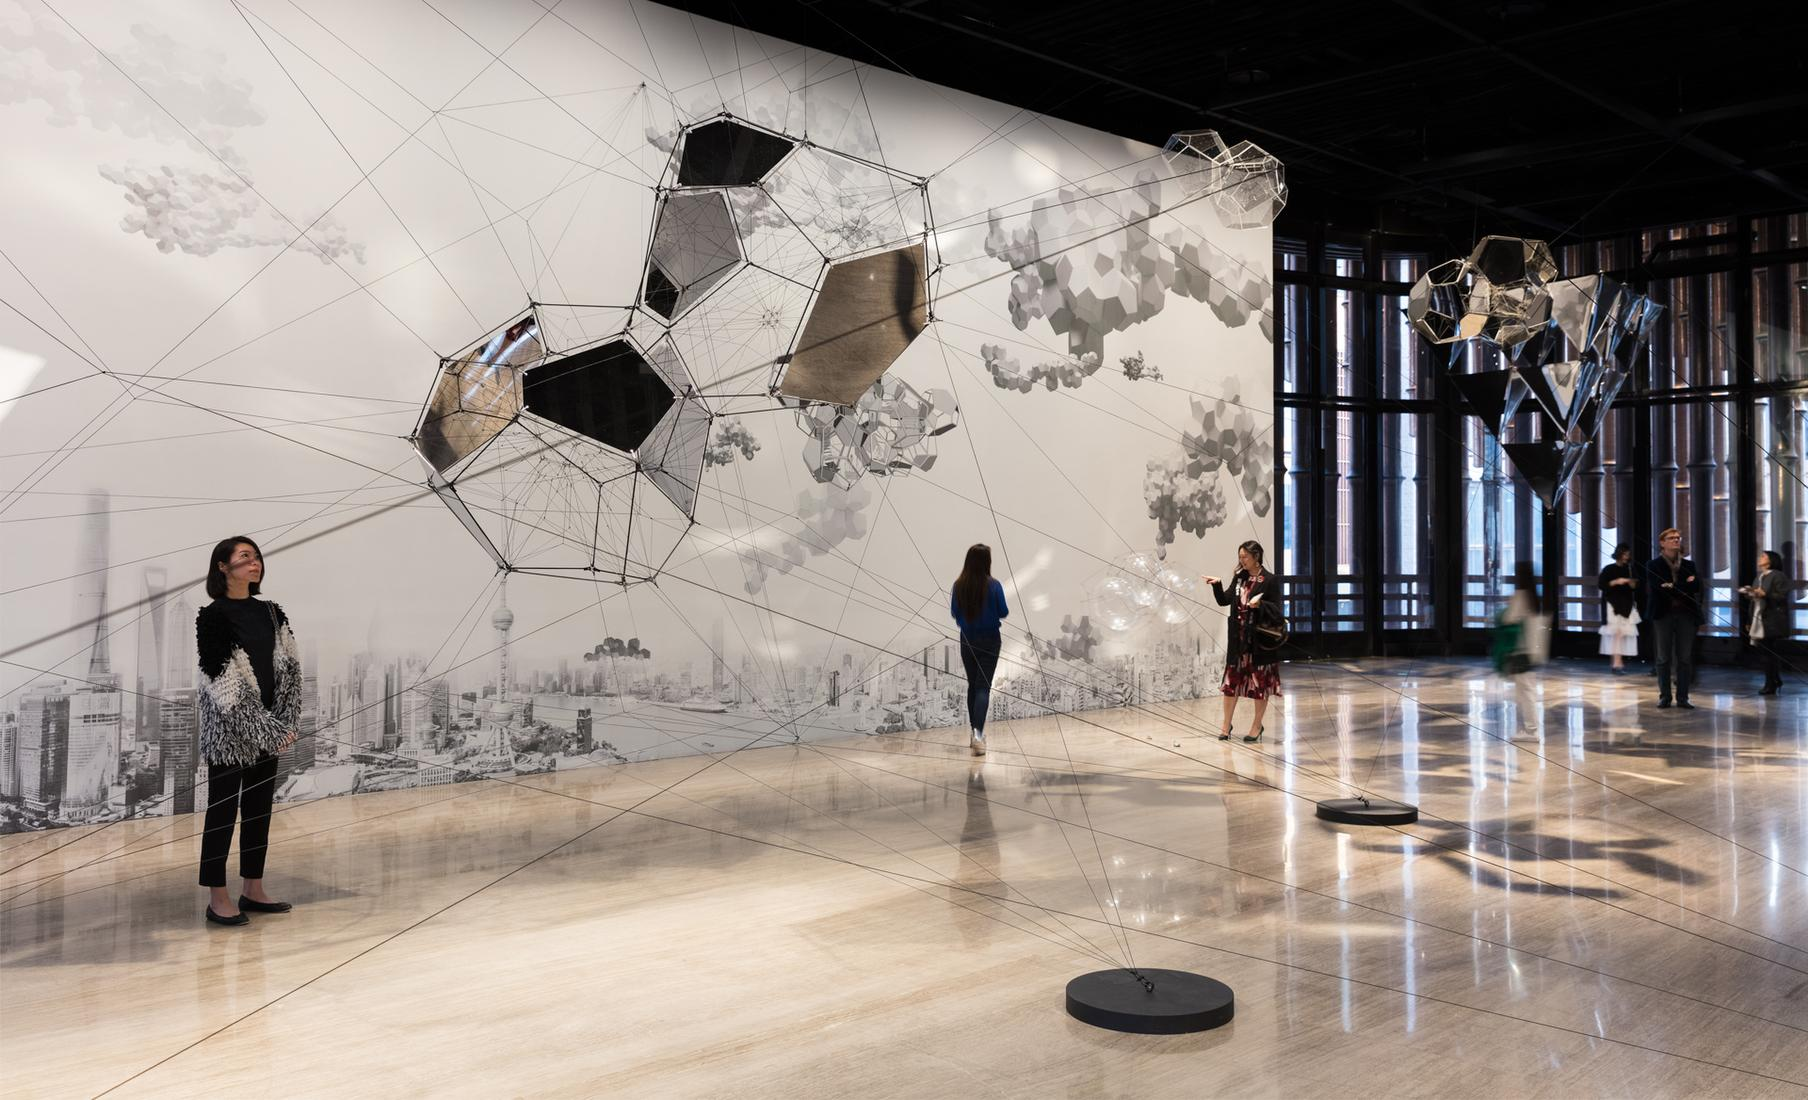 Tomás Saraceno: Aerographies The Utopian Practitioner and Visionary - Exhibitions